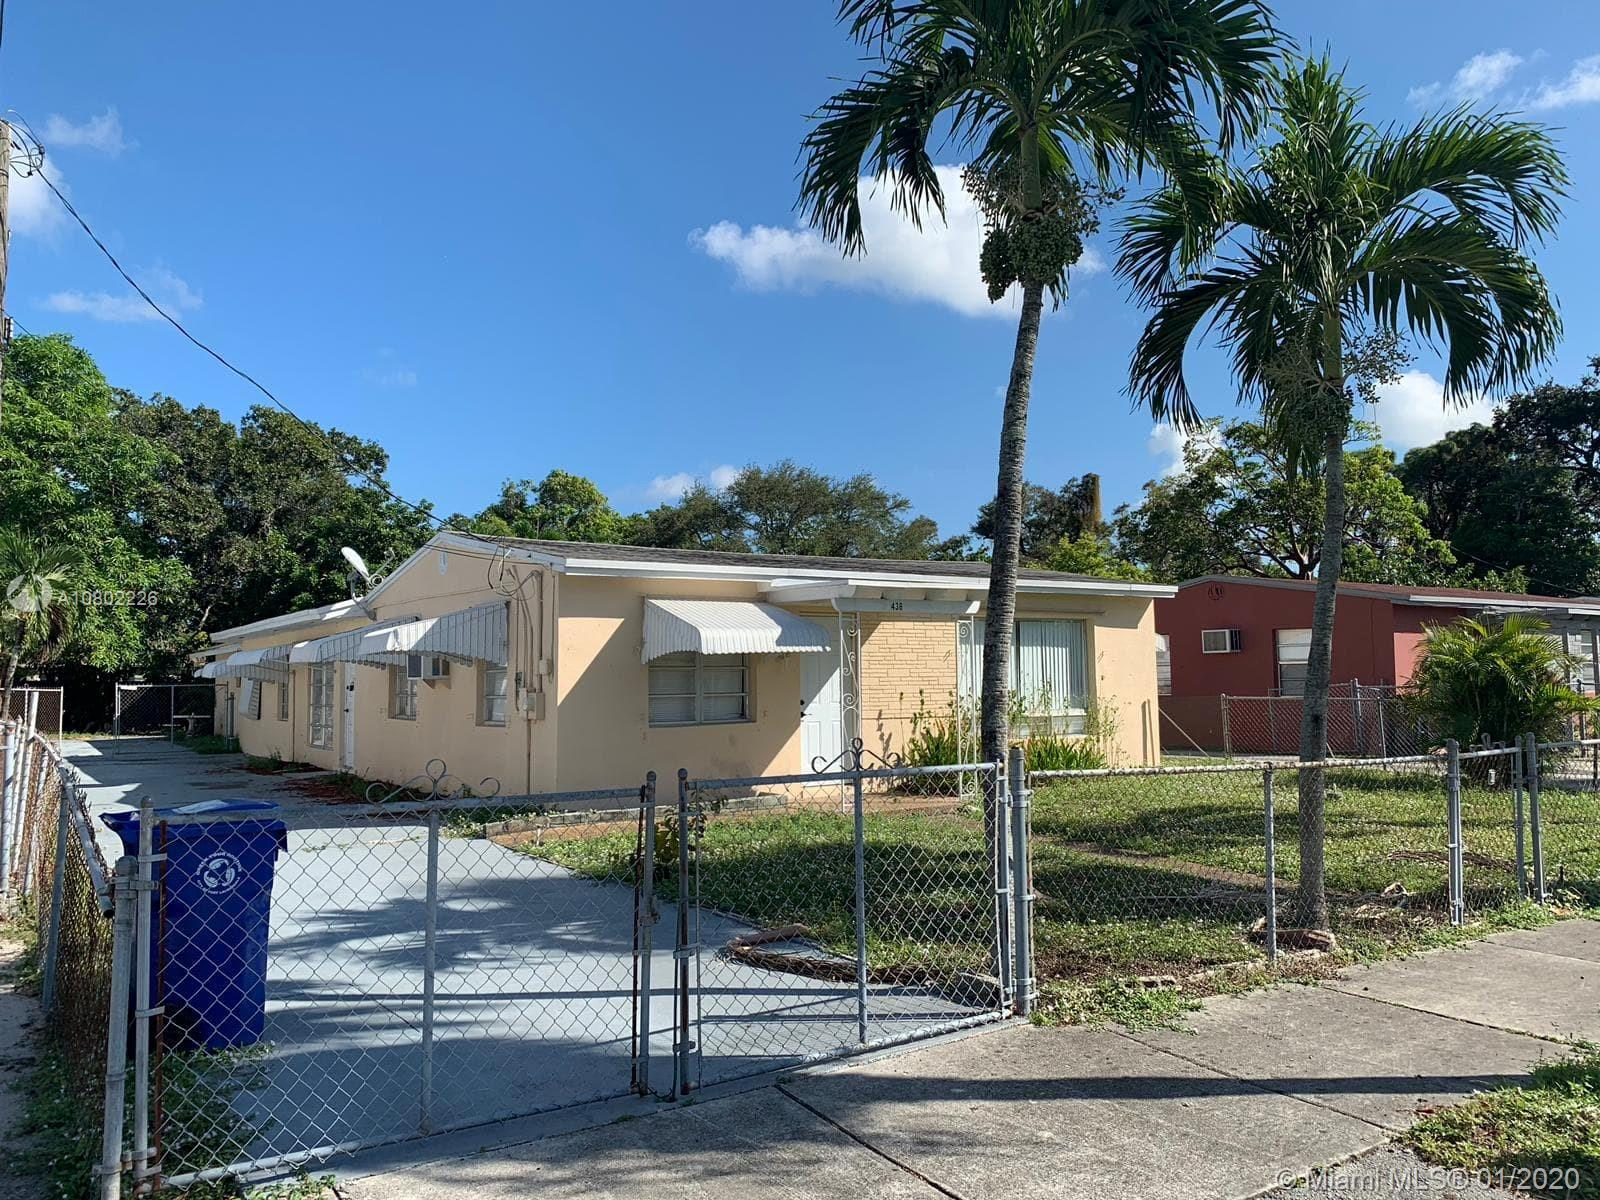 Spectacular, spacious, 3/2, two living area, huge 2 1/2 car garage! Zoned for duplex, Great neighborhood, very quiet. Also has a large lot, close to everything!Has potential to be used for more than one unit